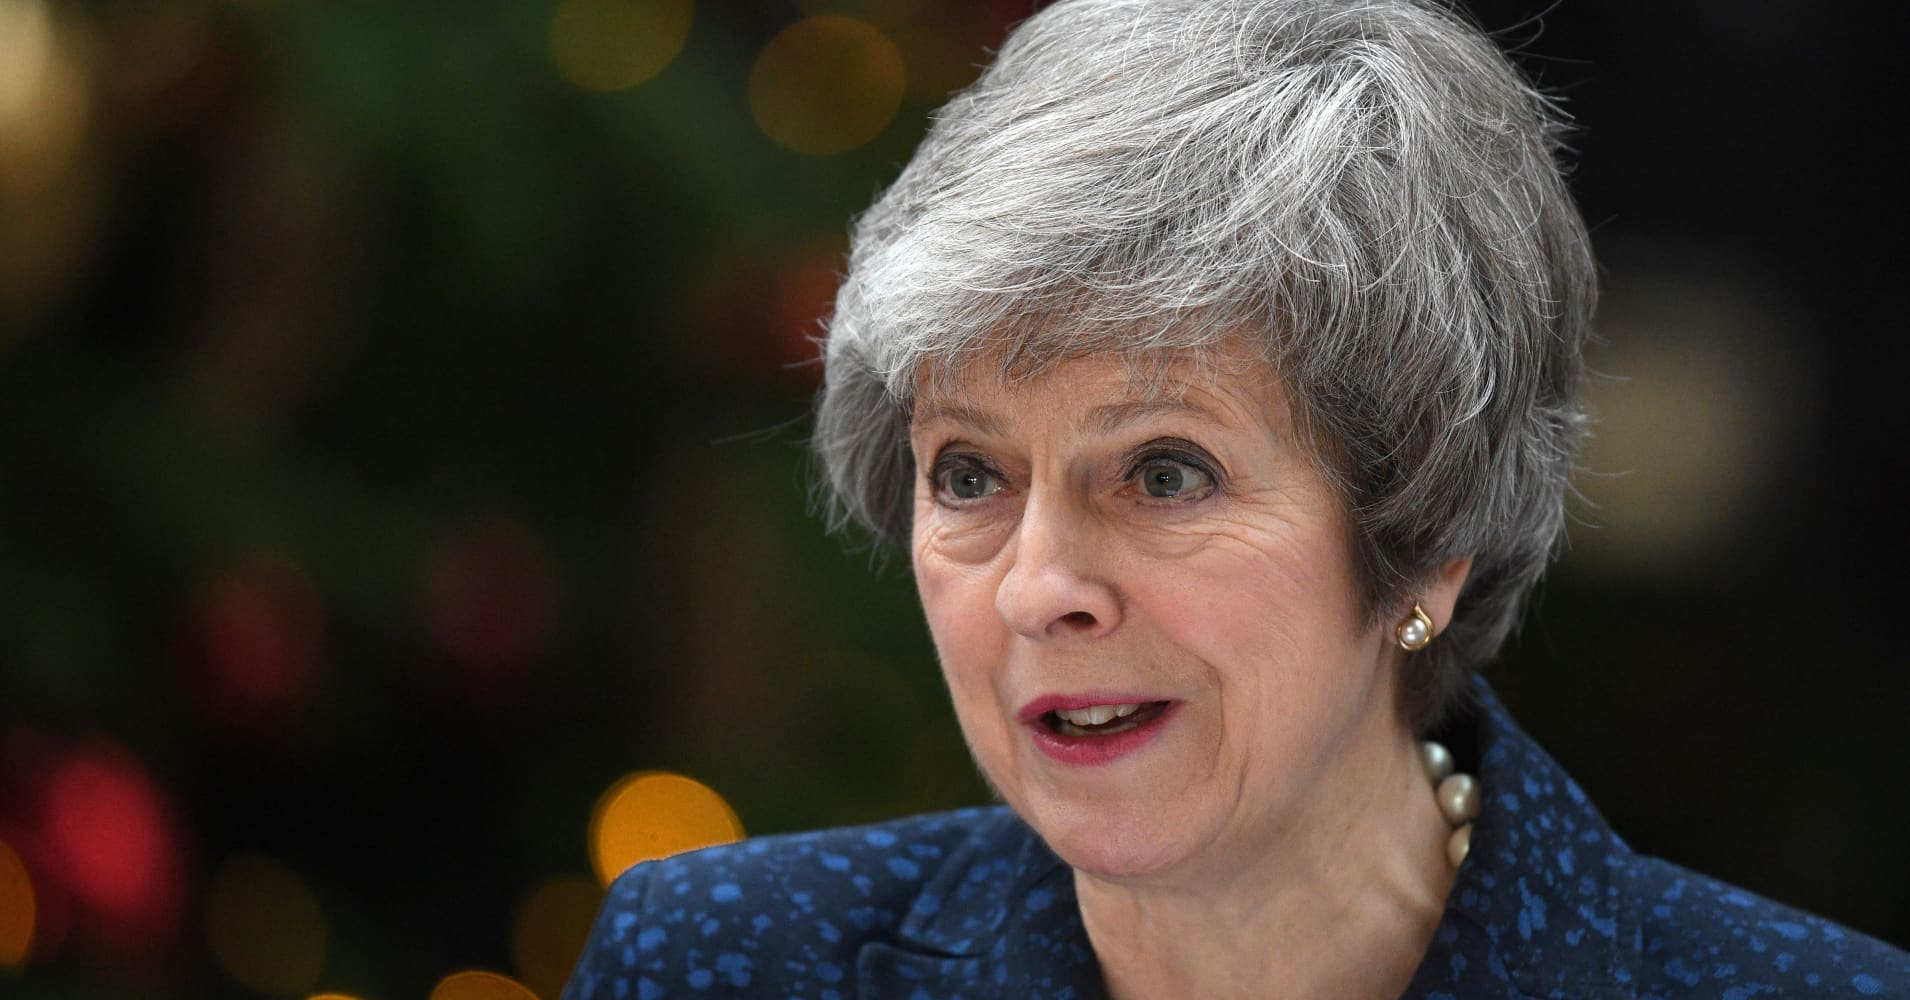 May says if Brexit deal is rejected, UK will be in uncharted territory